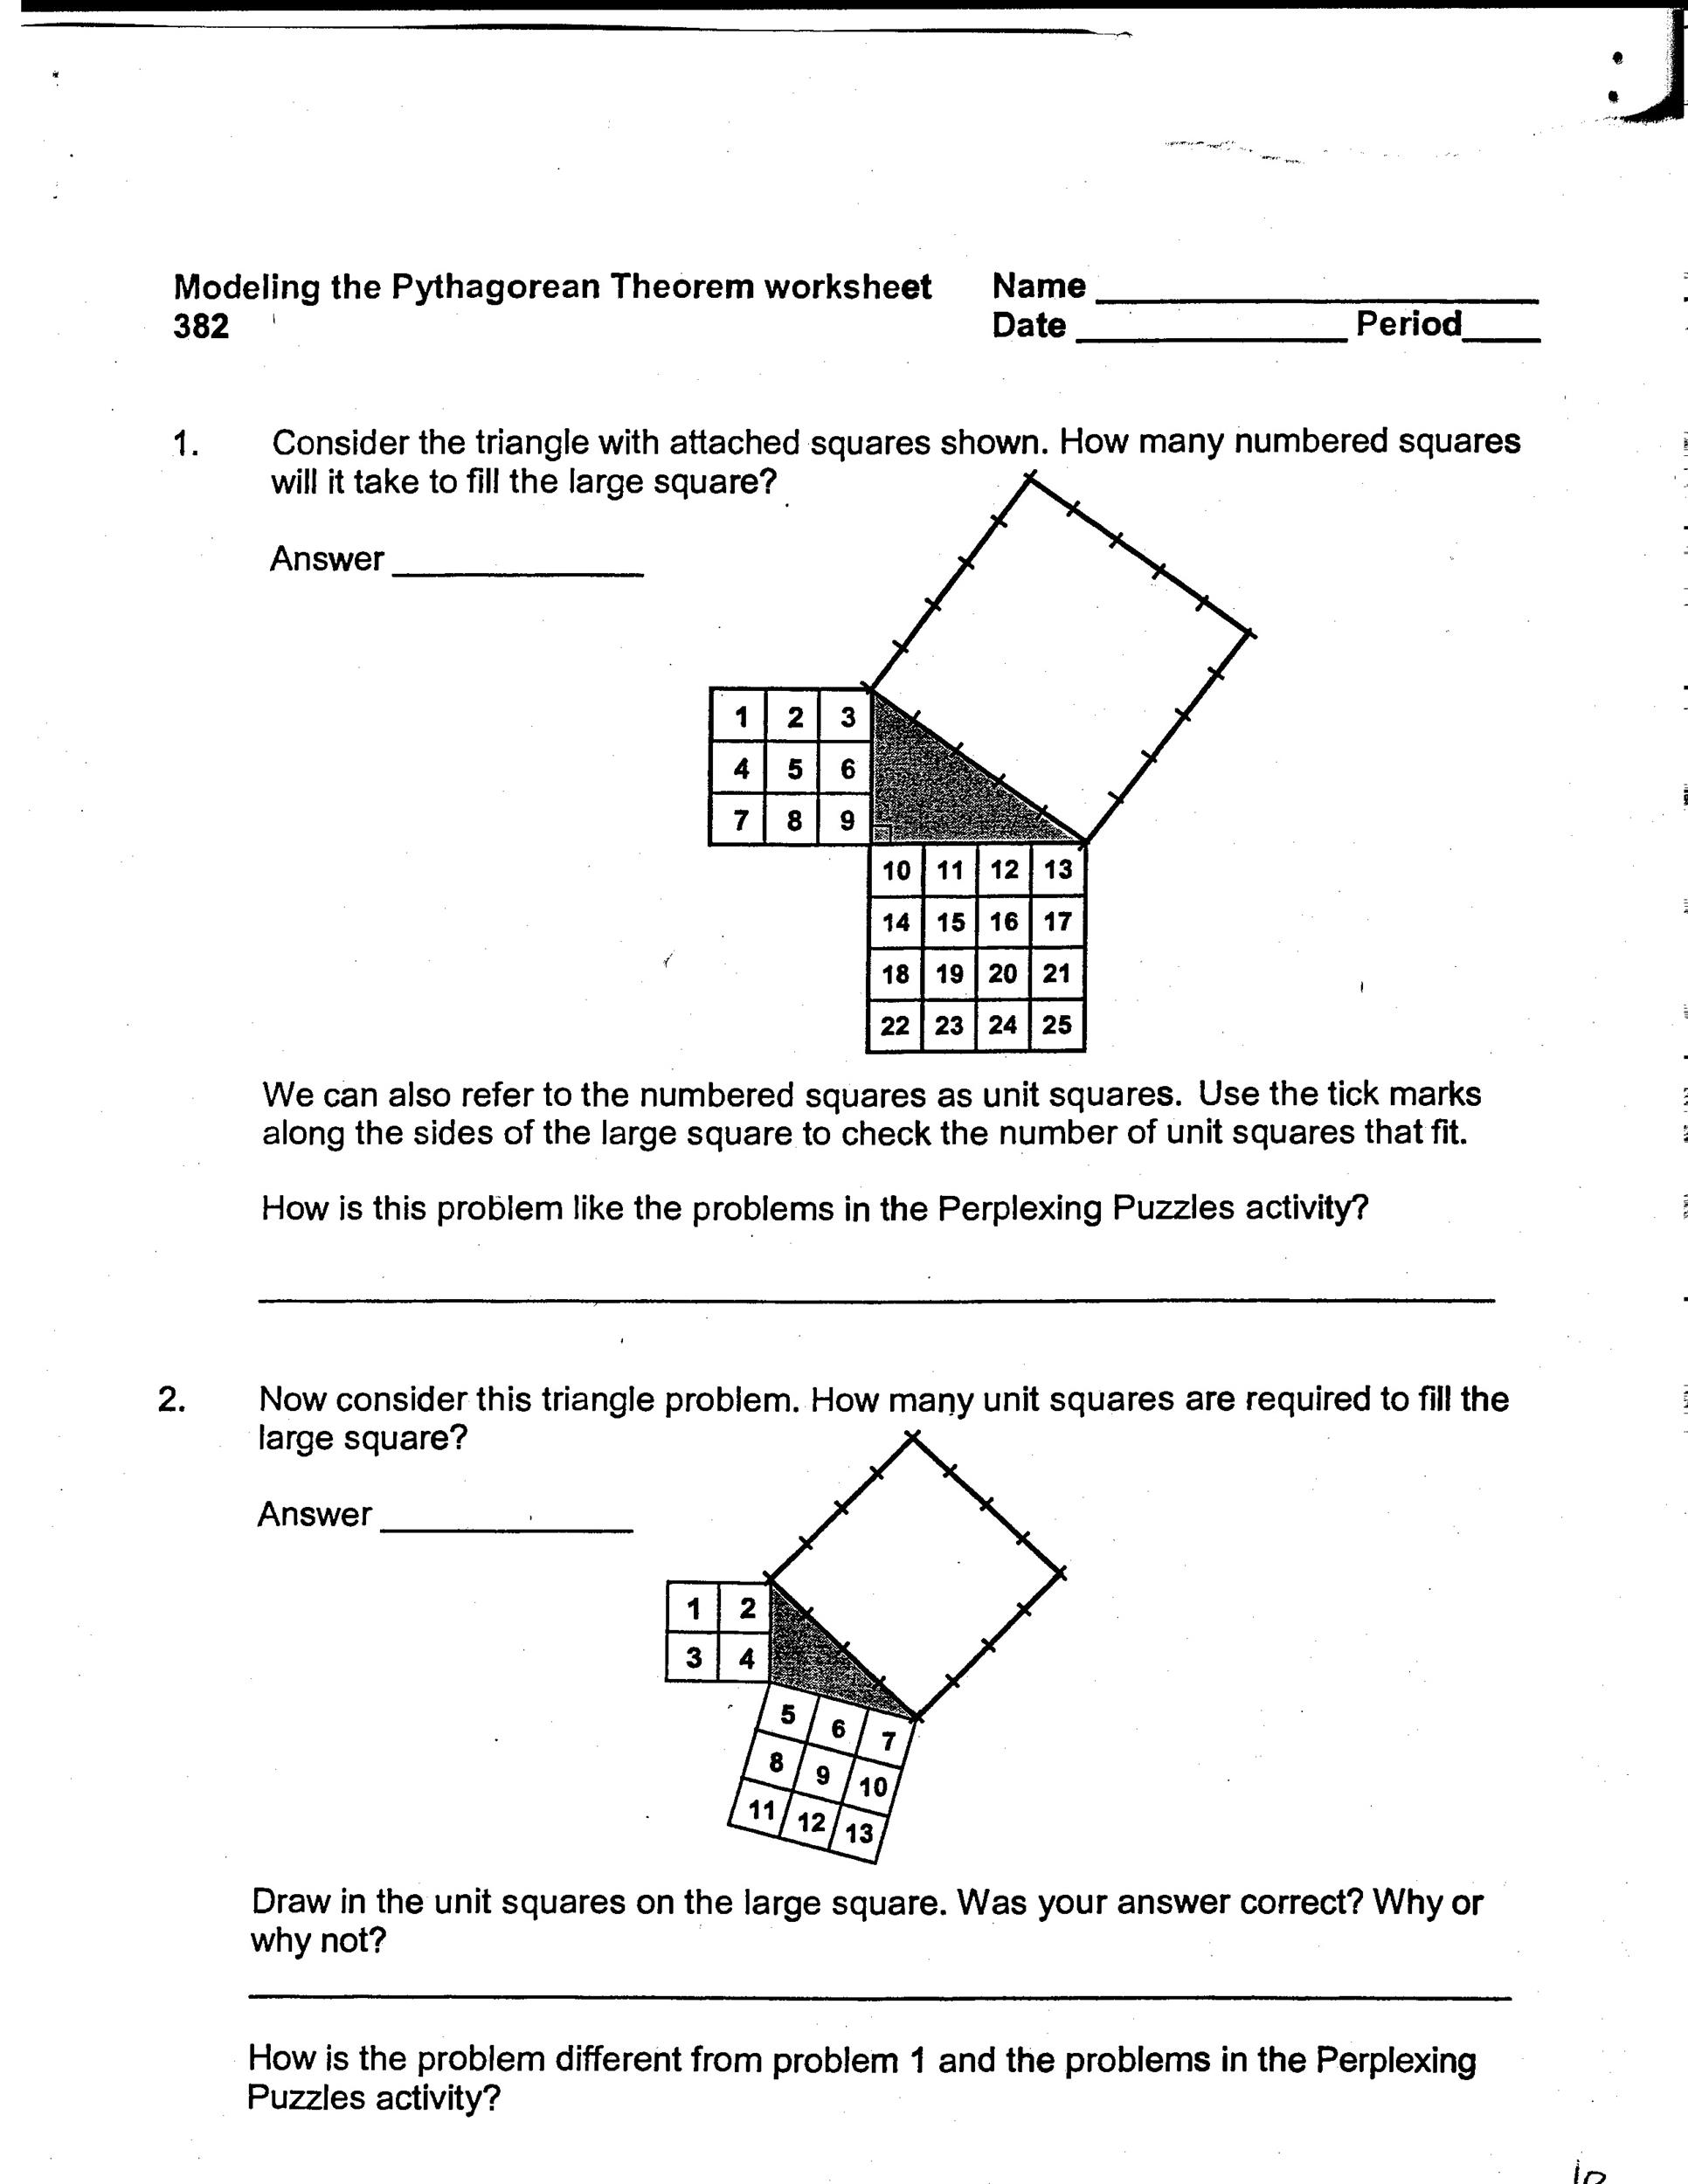 pythagorean theorem worksheet answers kidz activities. Black Bedroom Furniture Sets. Home Design Ideas